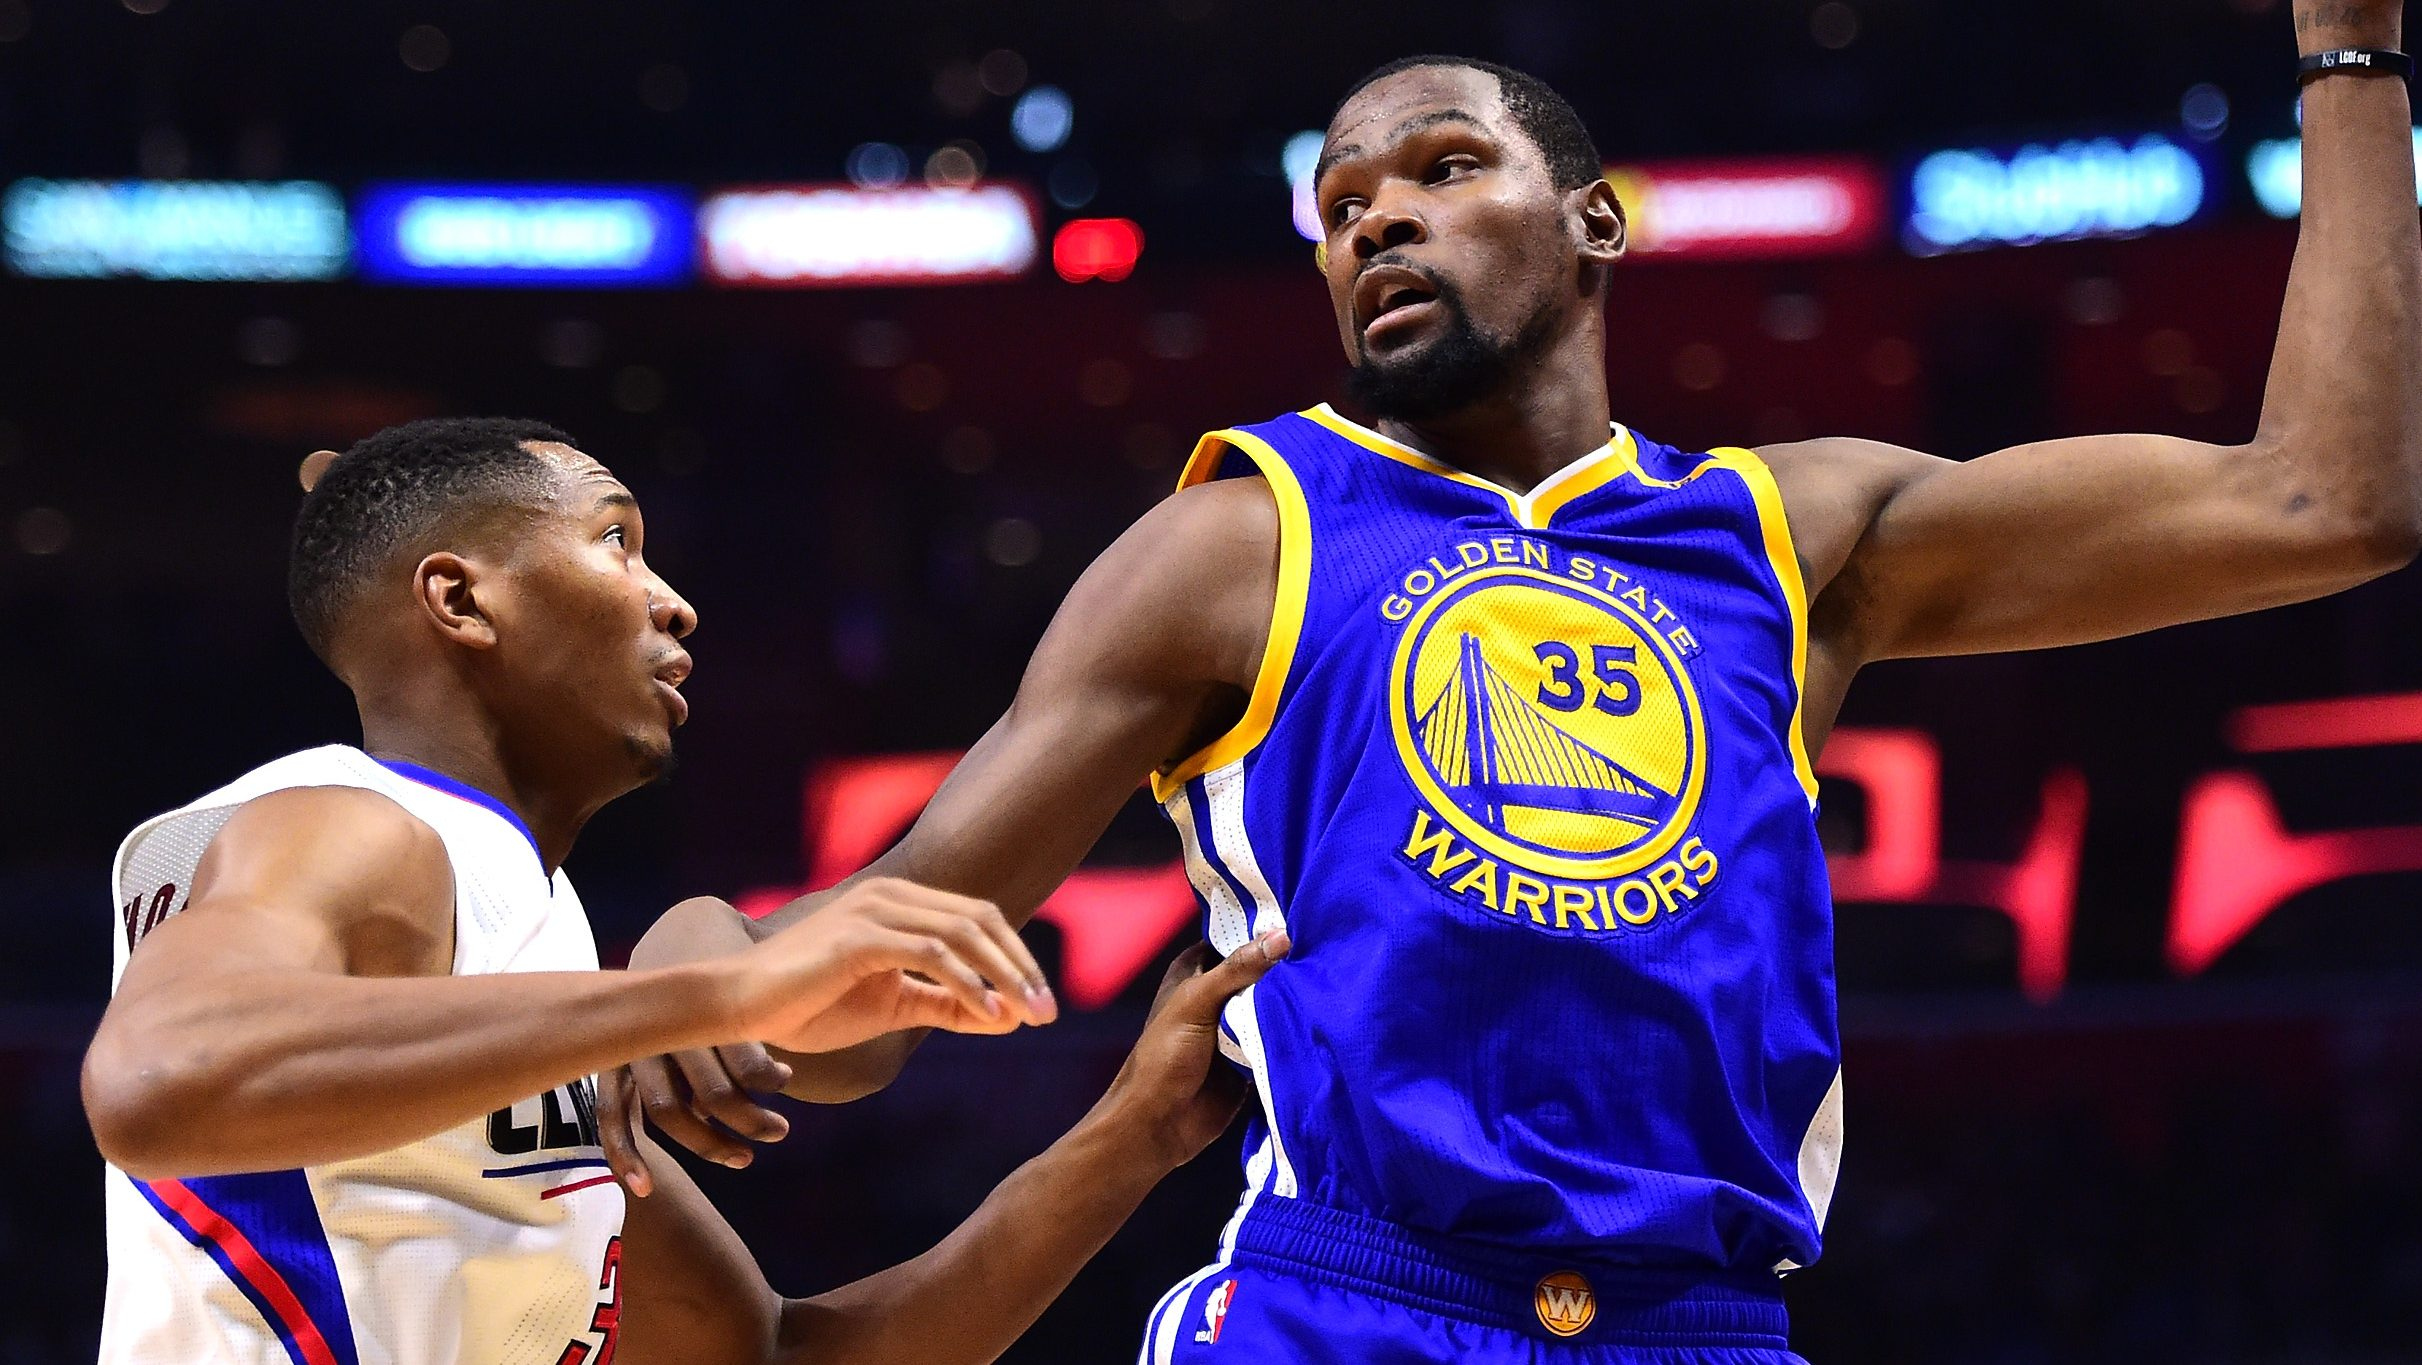 Warriors Playoff Schedule: Dates & Times vs. Clippers ...